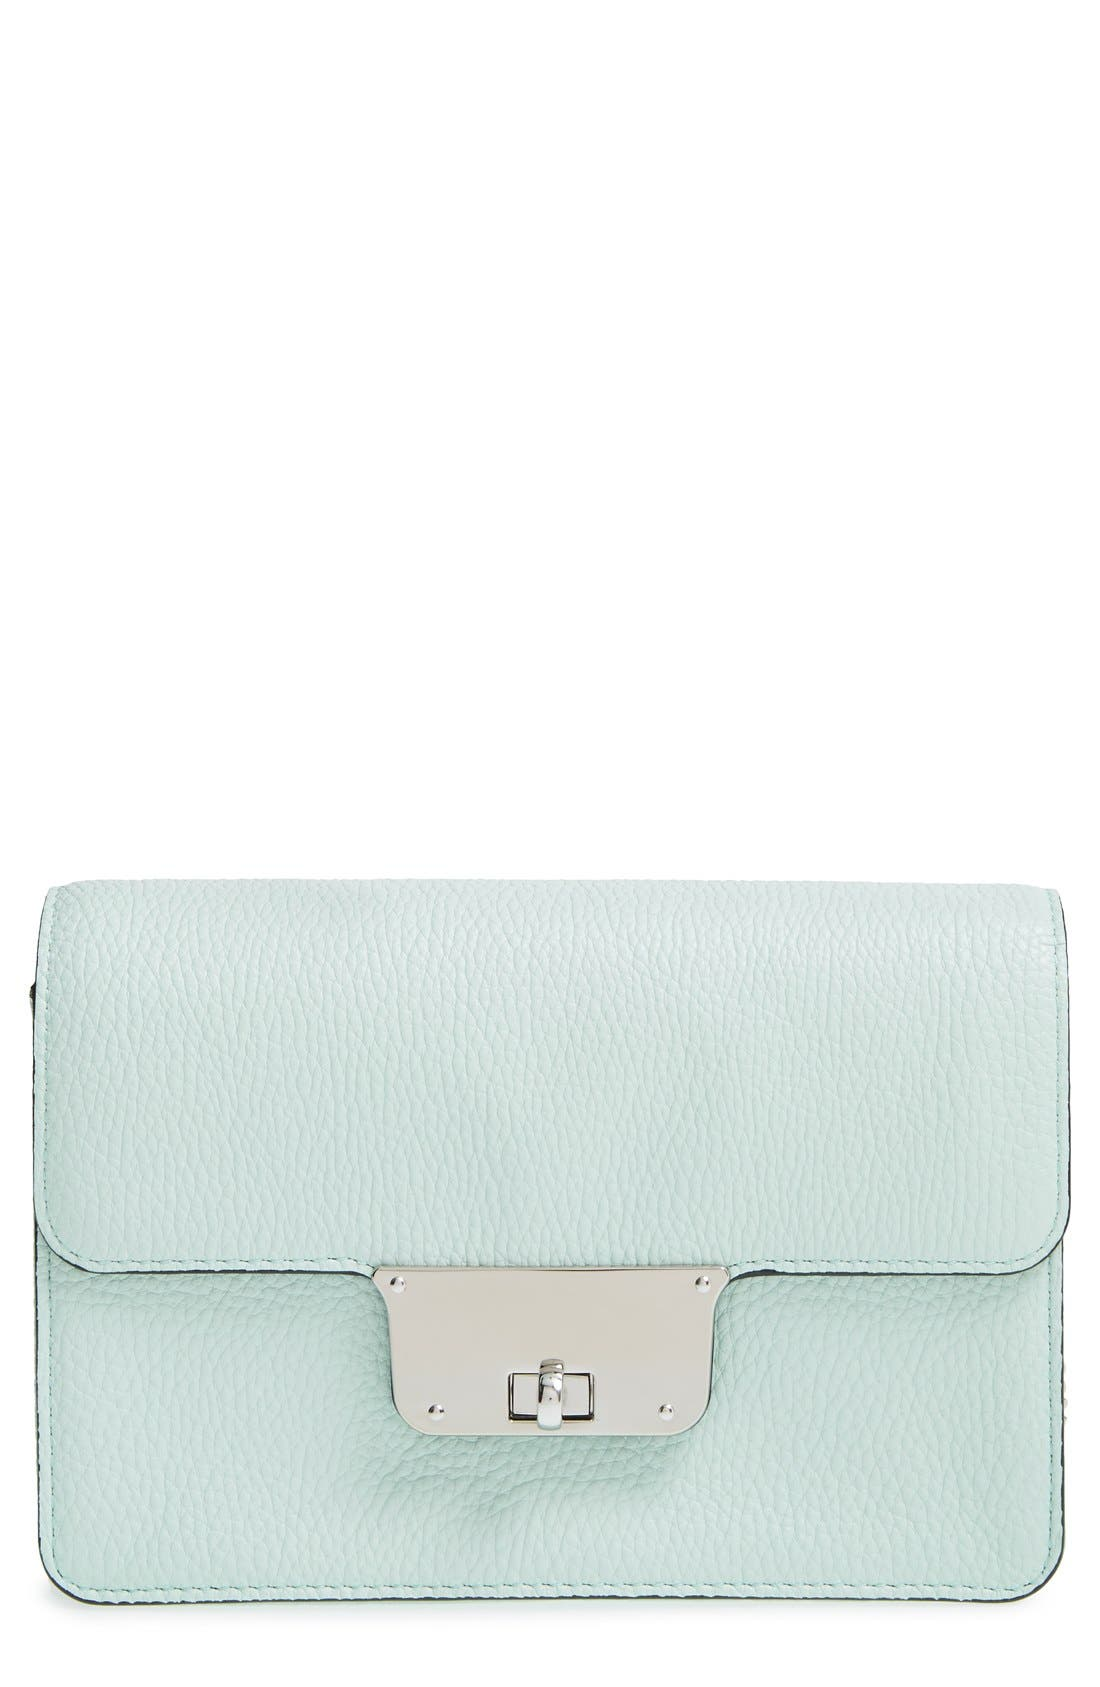 Alternate Image 1 Selected - Milly 'Mini Astor' Pebbled Leather Crossbody Bag